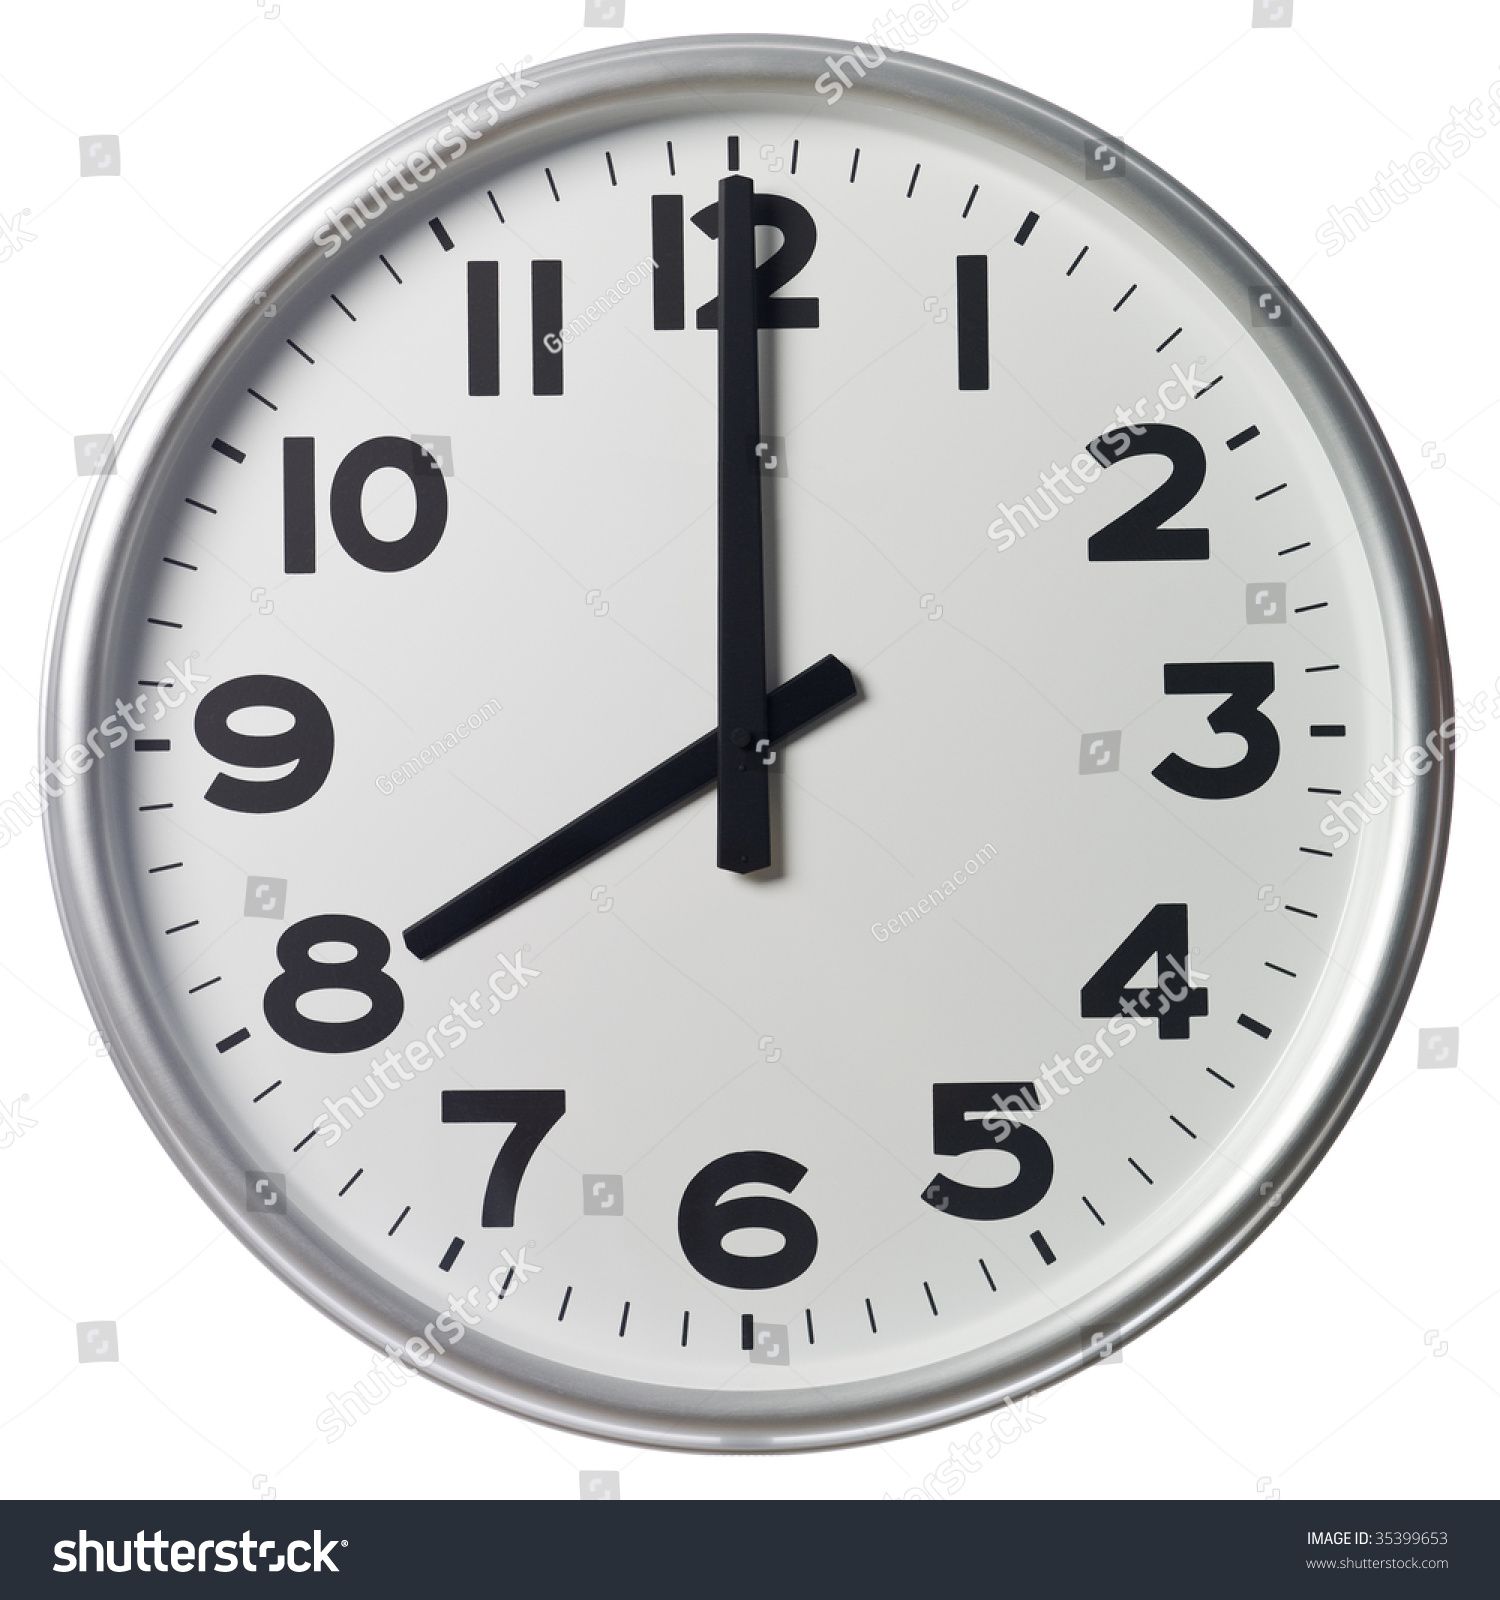 eight o clock Radell faraday ray nelson (born october 3, 1931) is an american science fiction author and cartoonist most famous for his 1963 short story eight o'clock in the.